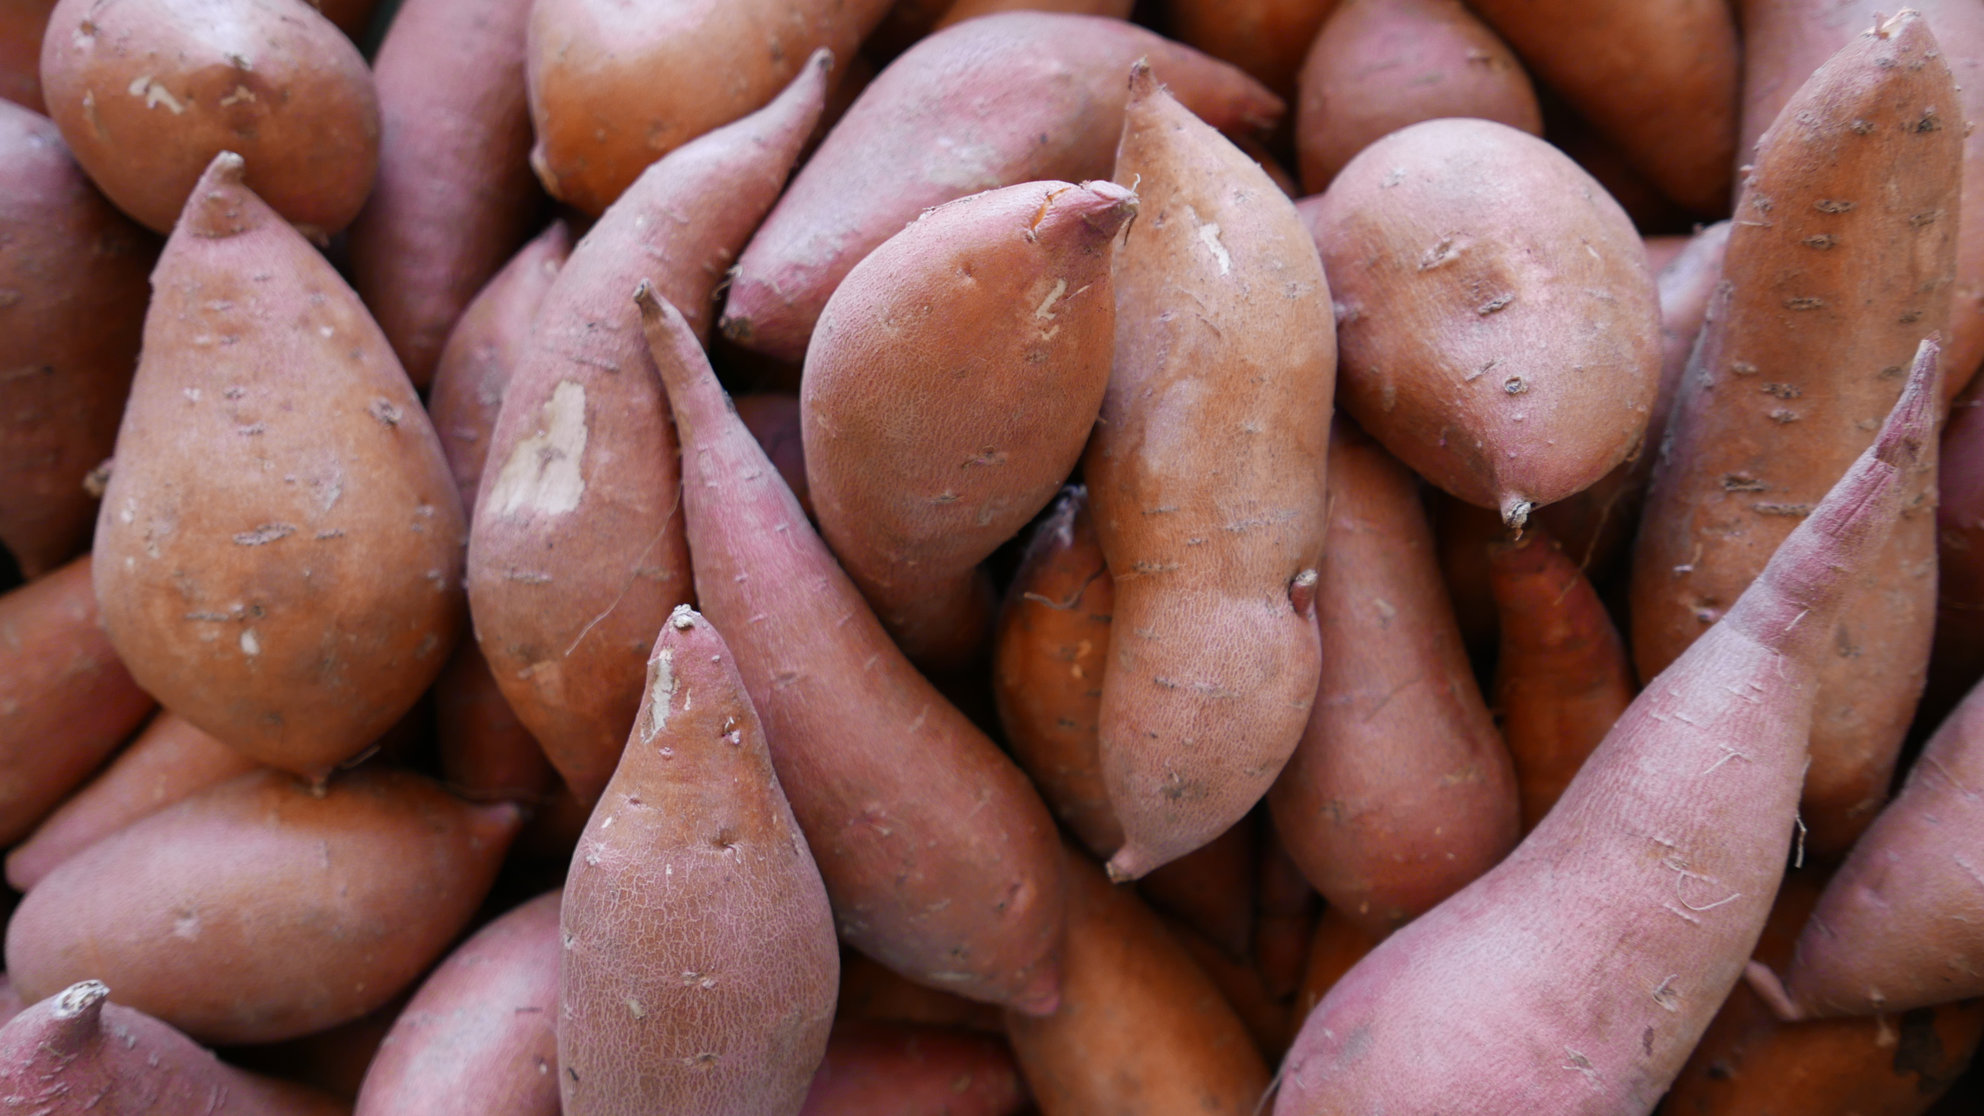 yams-sweet-potato-group